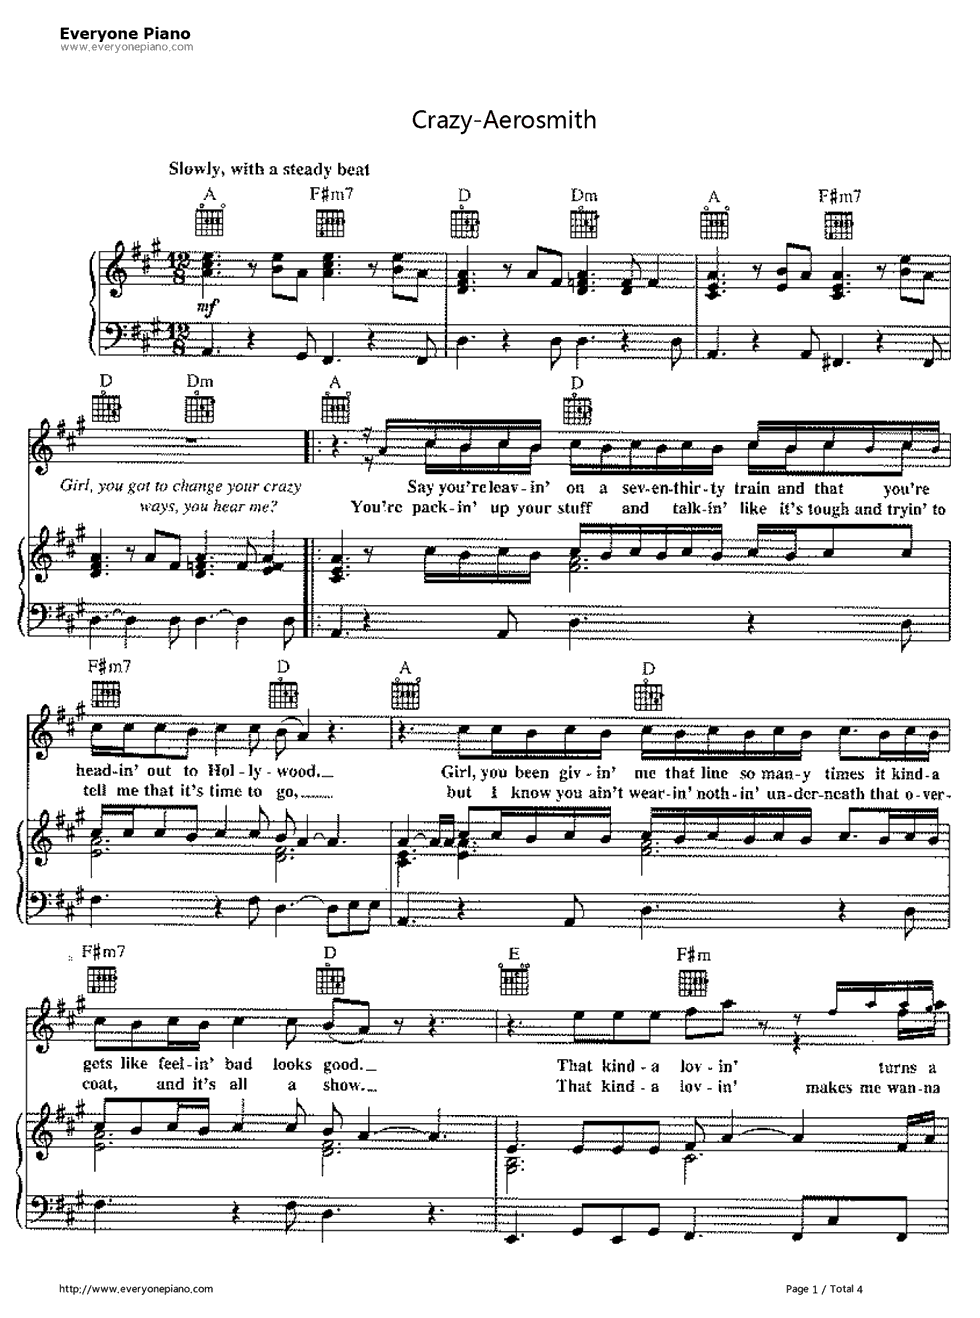 Crazy aerosmith stave preview 1 free piano sheet music piano chords listen now print sheet crazy aerosmith stave preview 1 hexwebz Choice Image